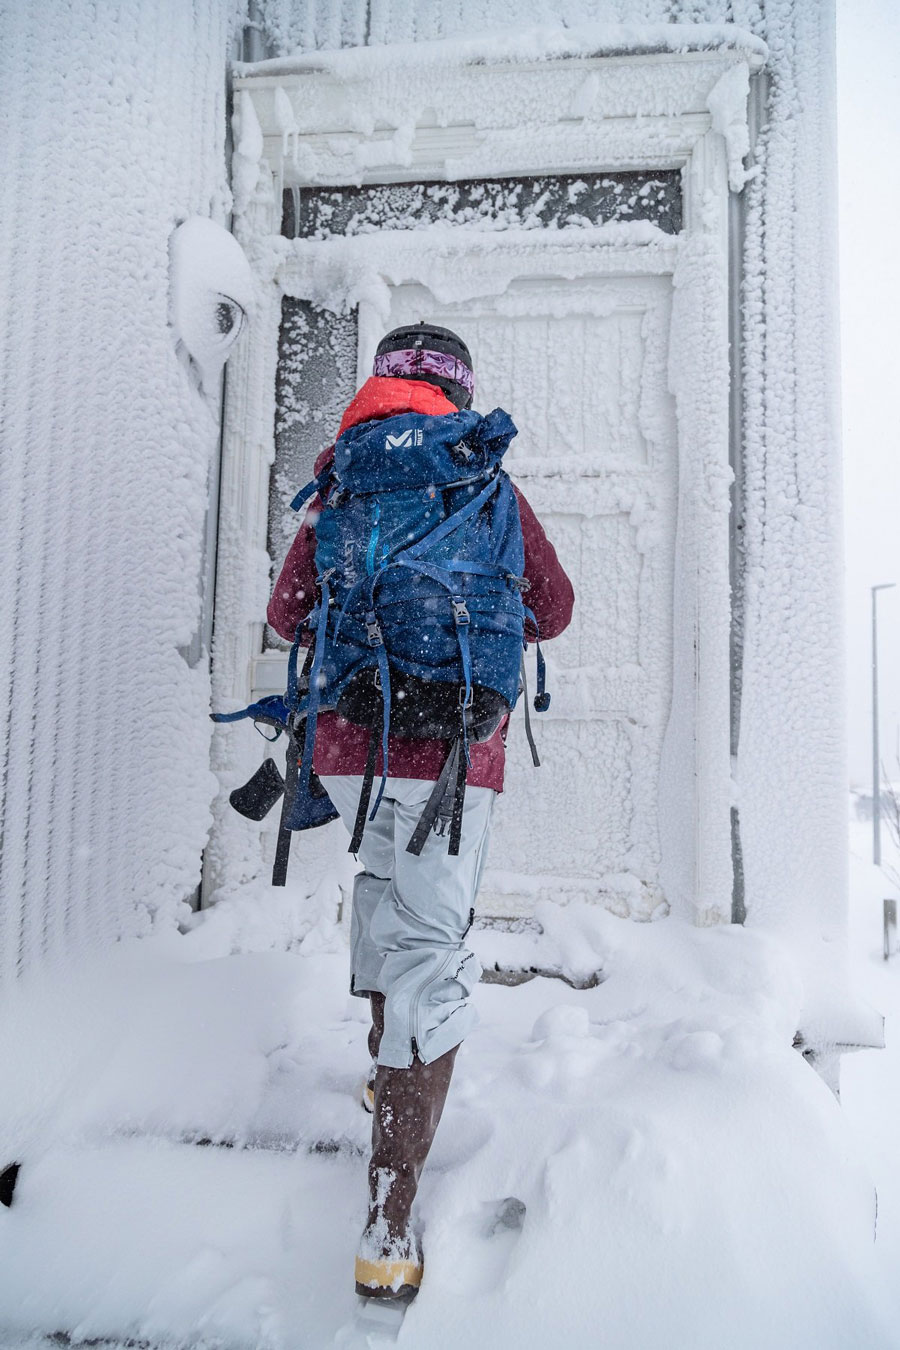 Trekking with gear in the snow